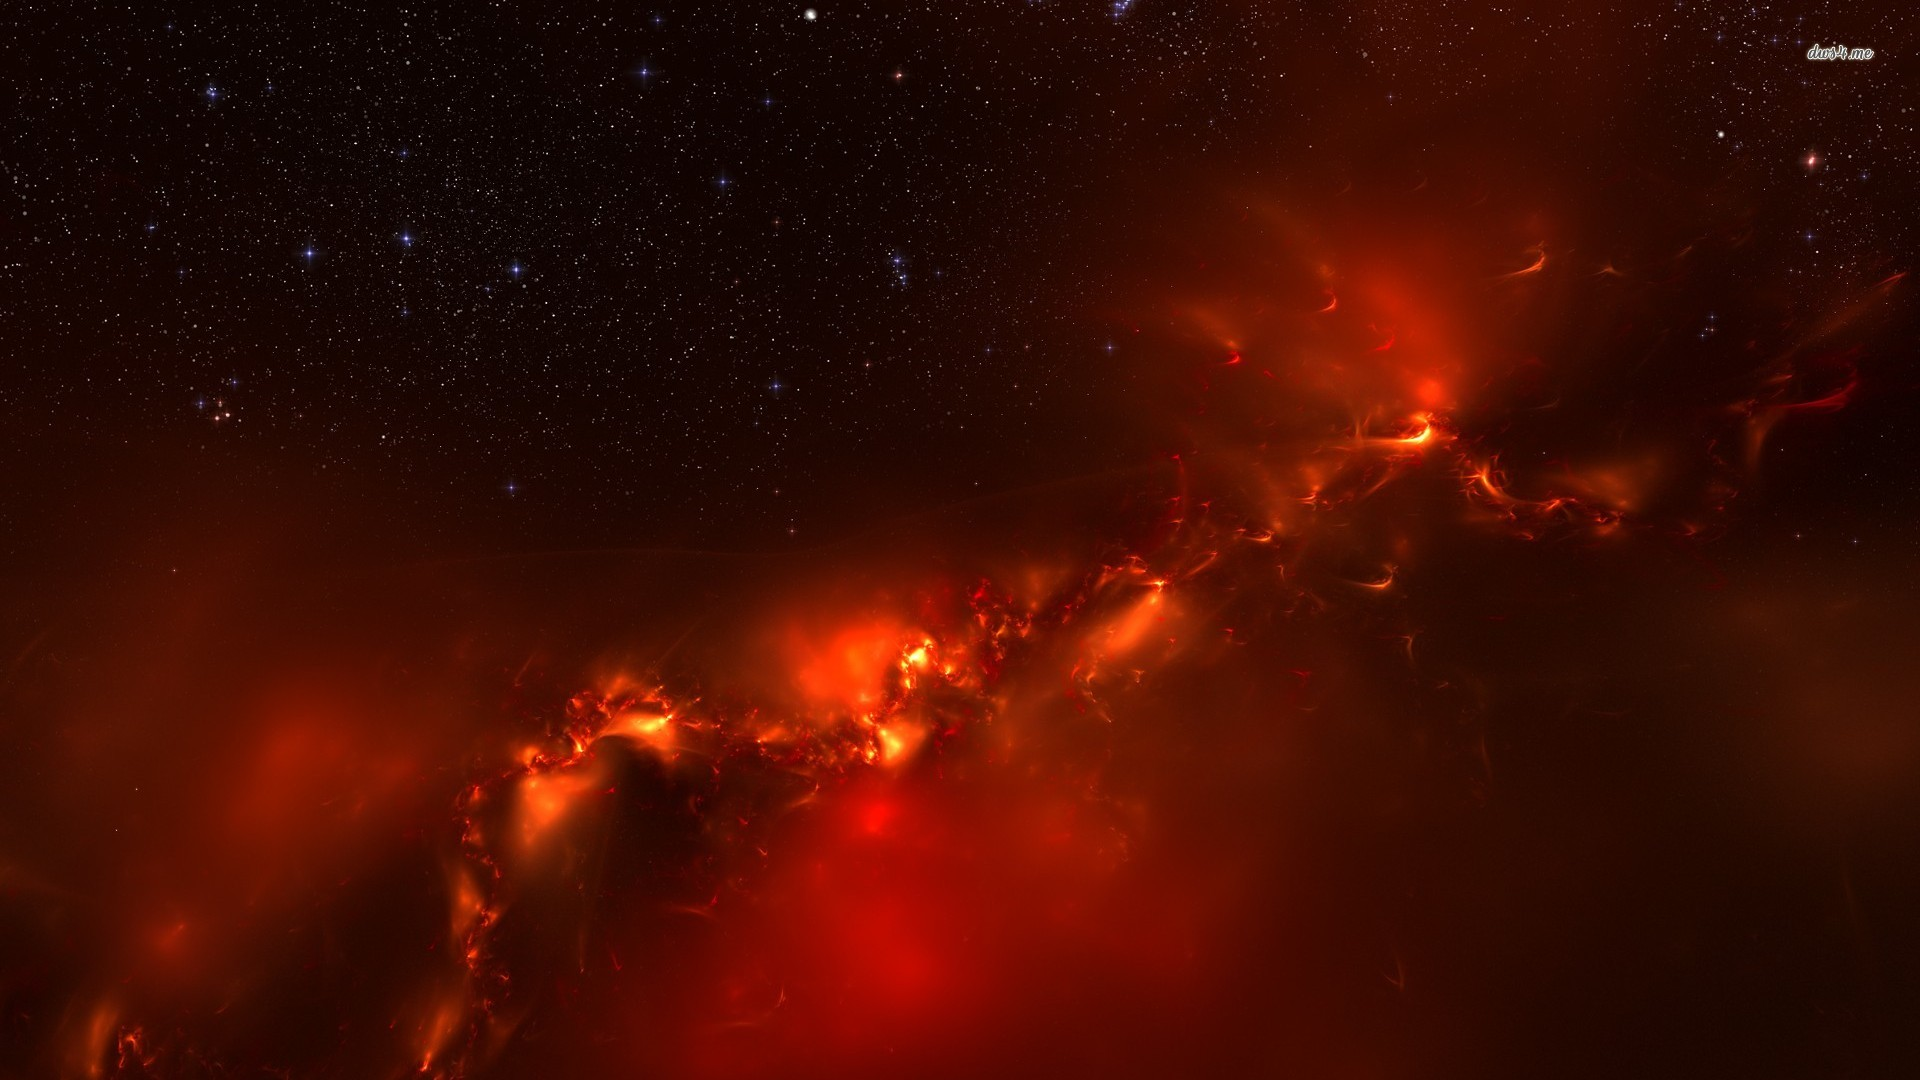 Red Space Wallpaper